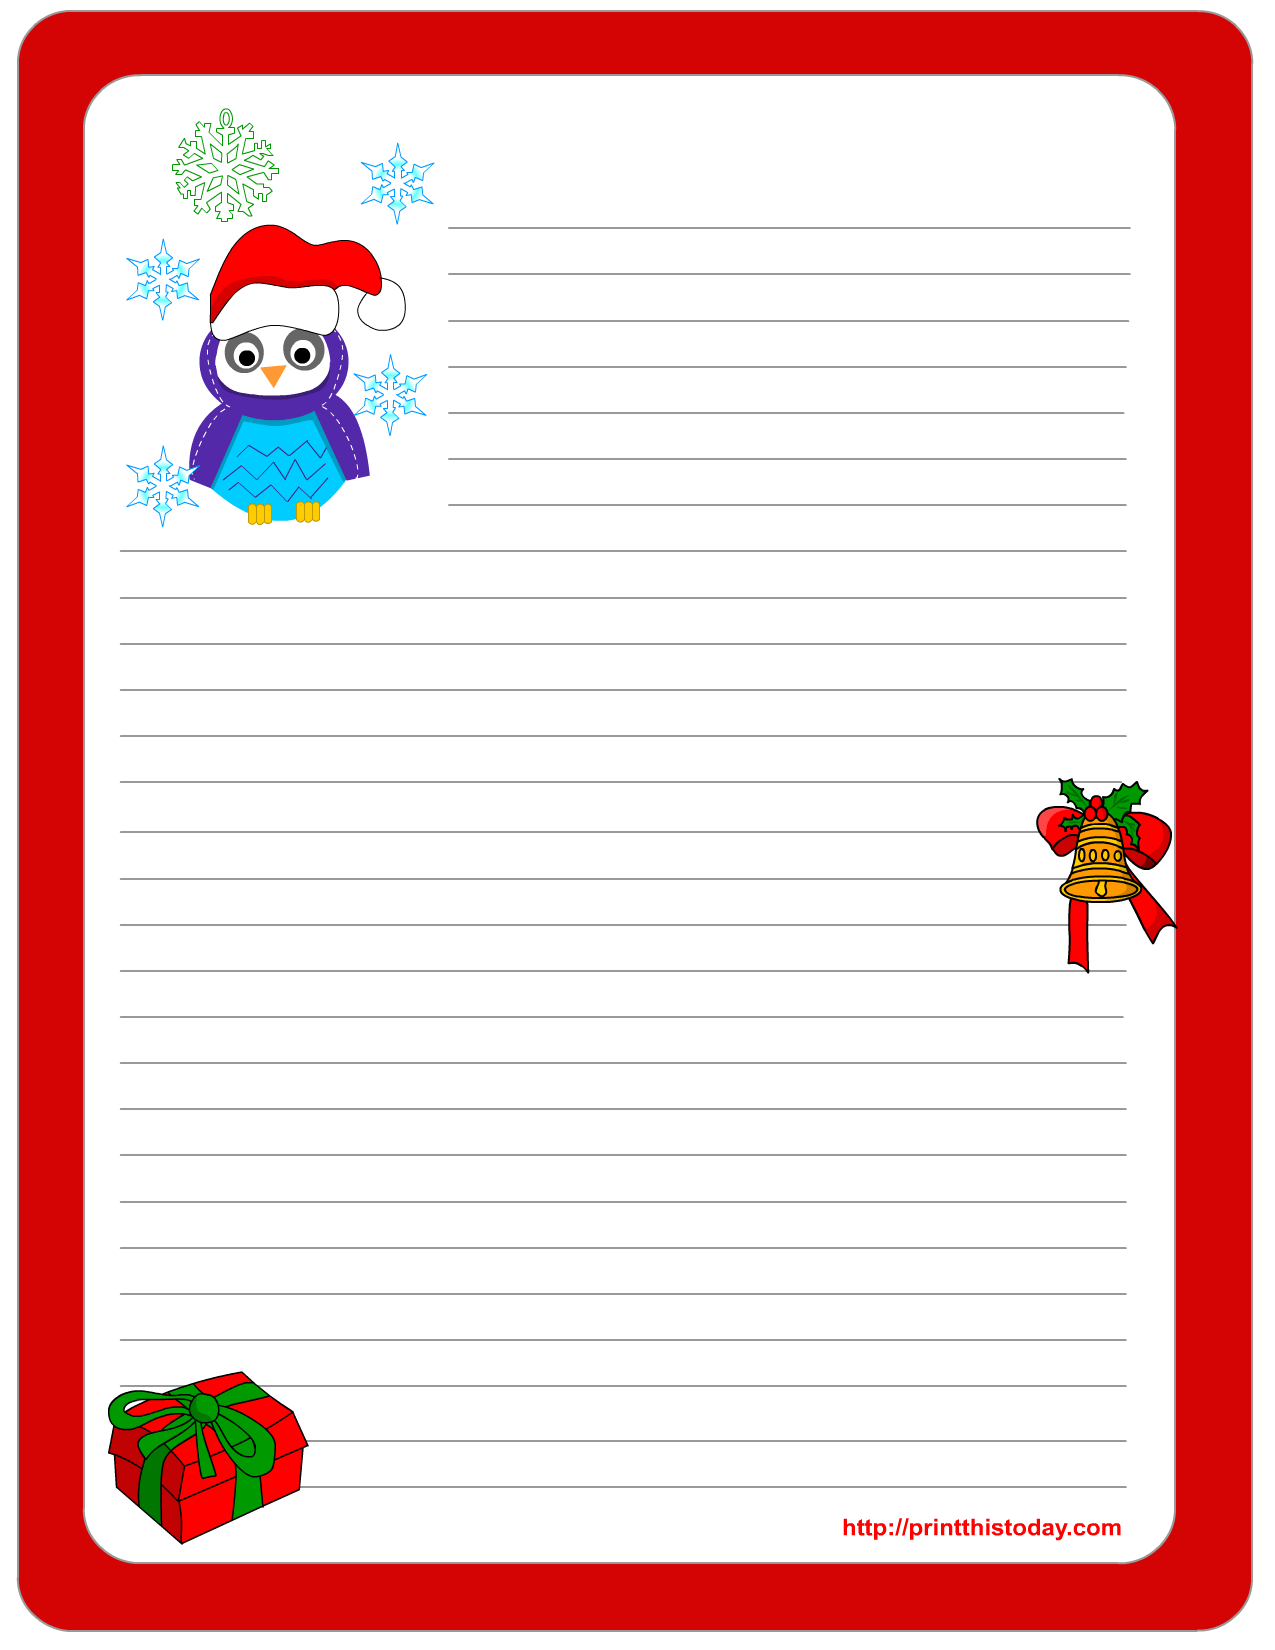 photograph about Printable Christmas List Template identify no cost printable xmas record template - Elim